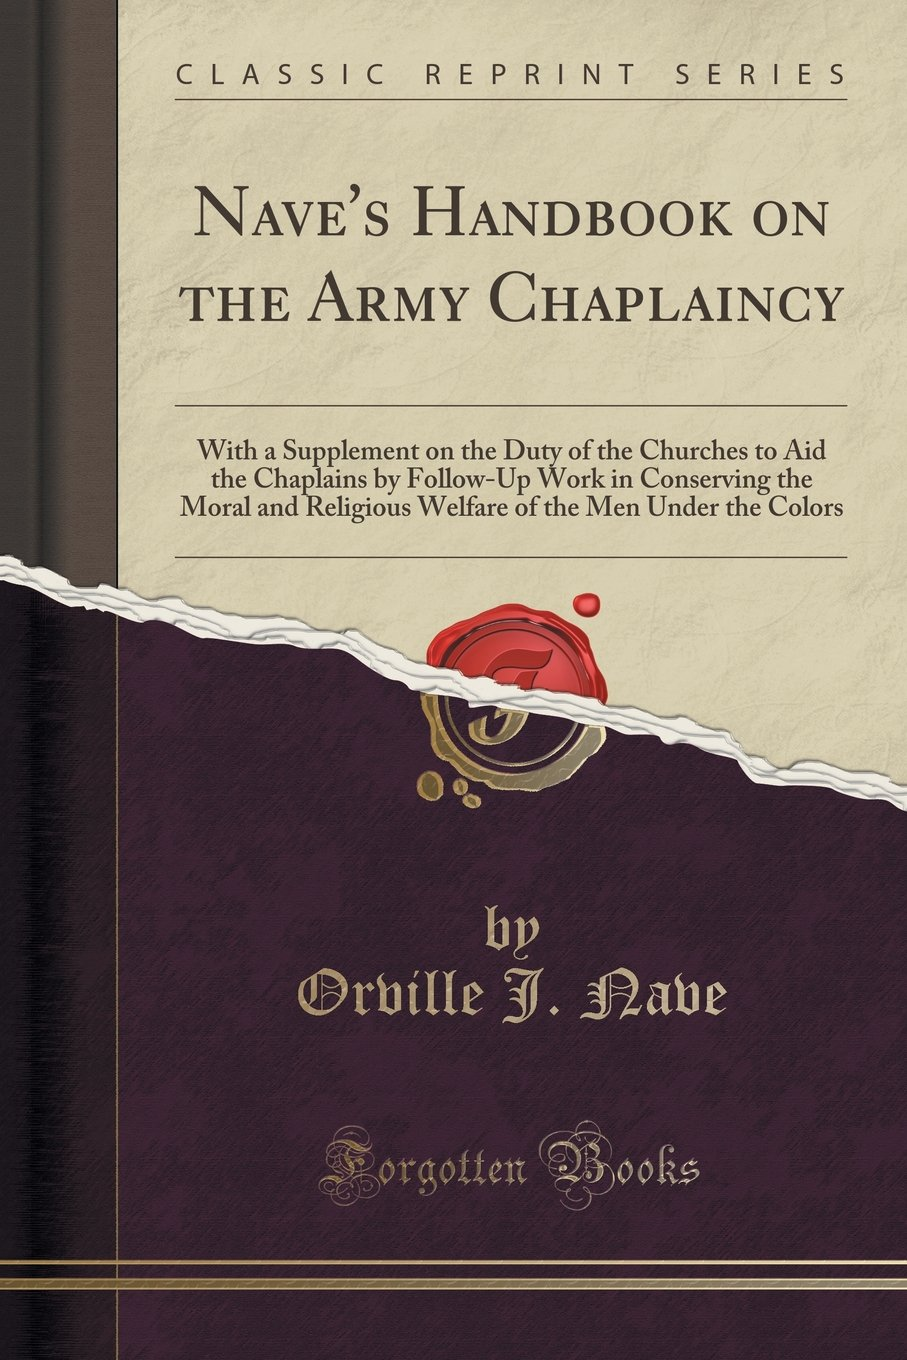 Nave's Handbook on the Army Chaplaincy: With a Supplement on the Duty of the Churches to Aid the Chaplains by Follow-Up Work in Conserving the Moral ... of the Men Under the Colors (Classic Reprint) PDF